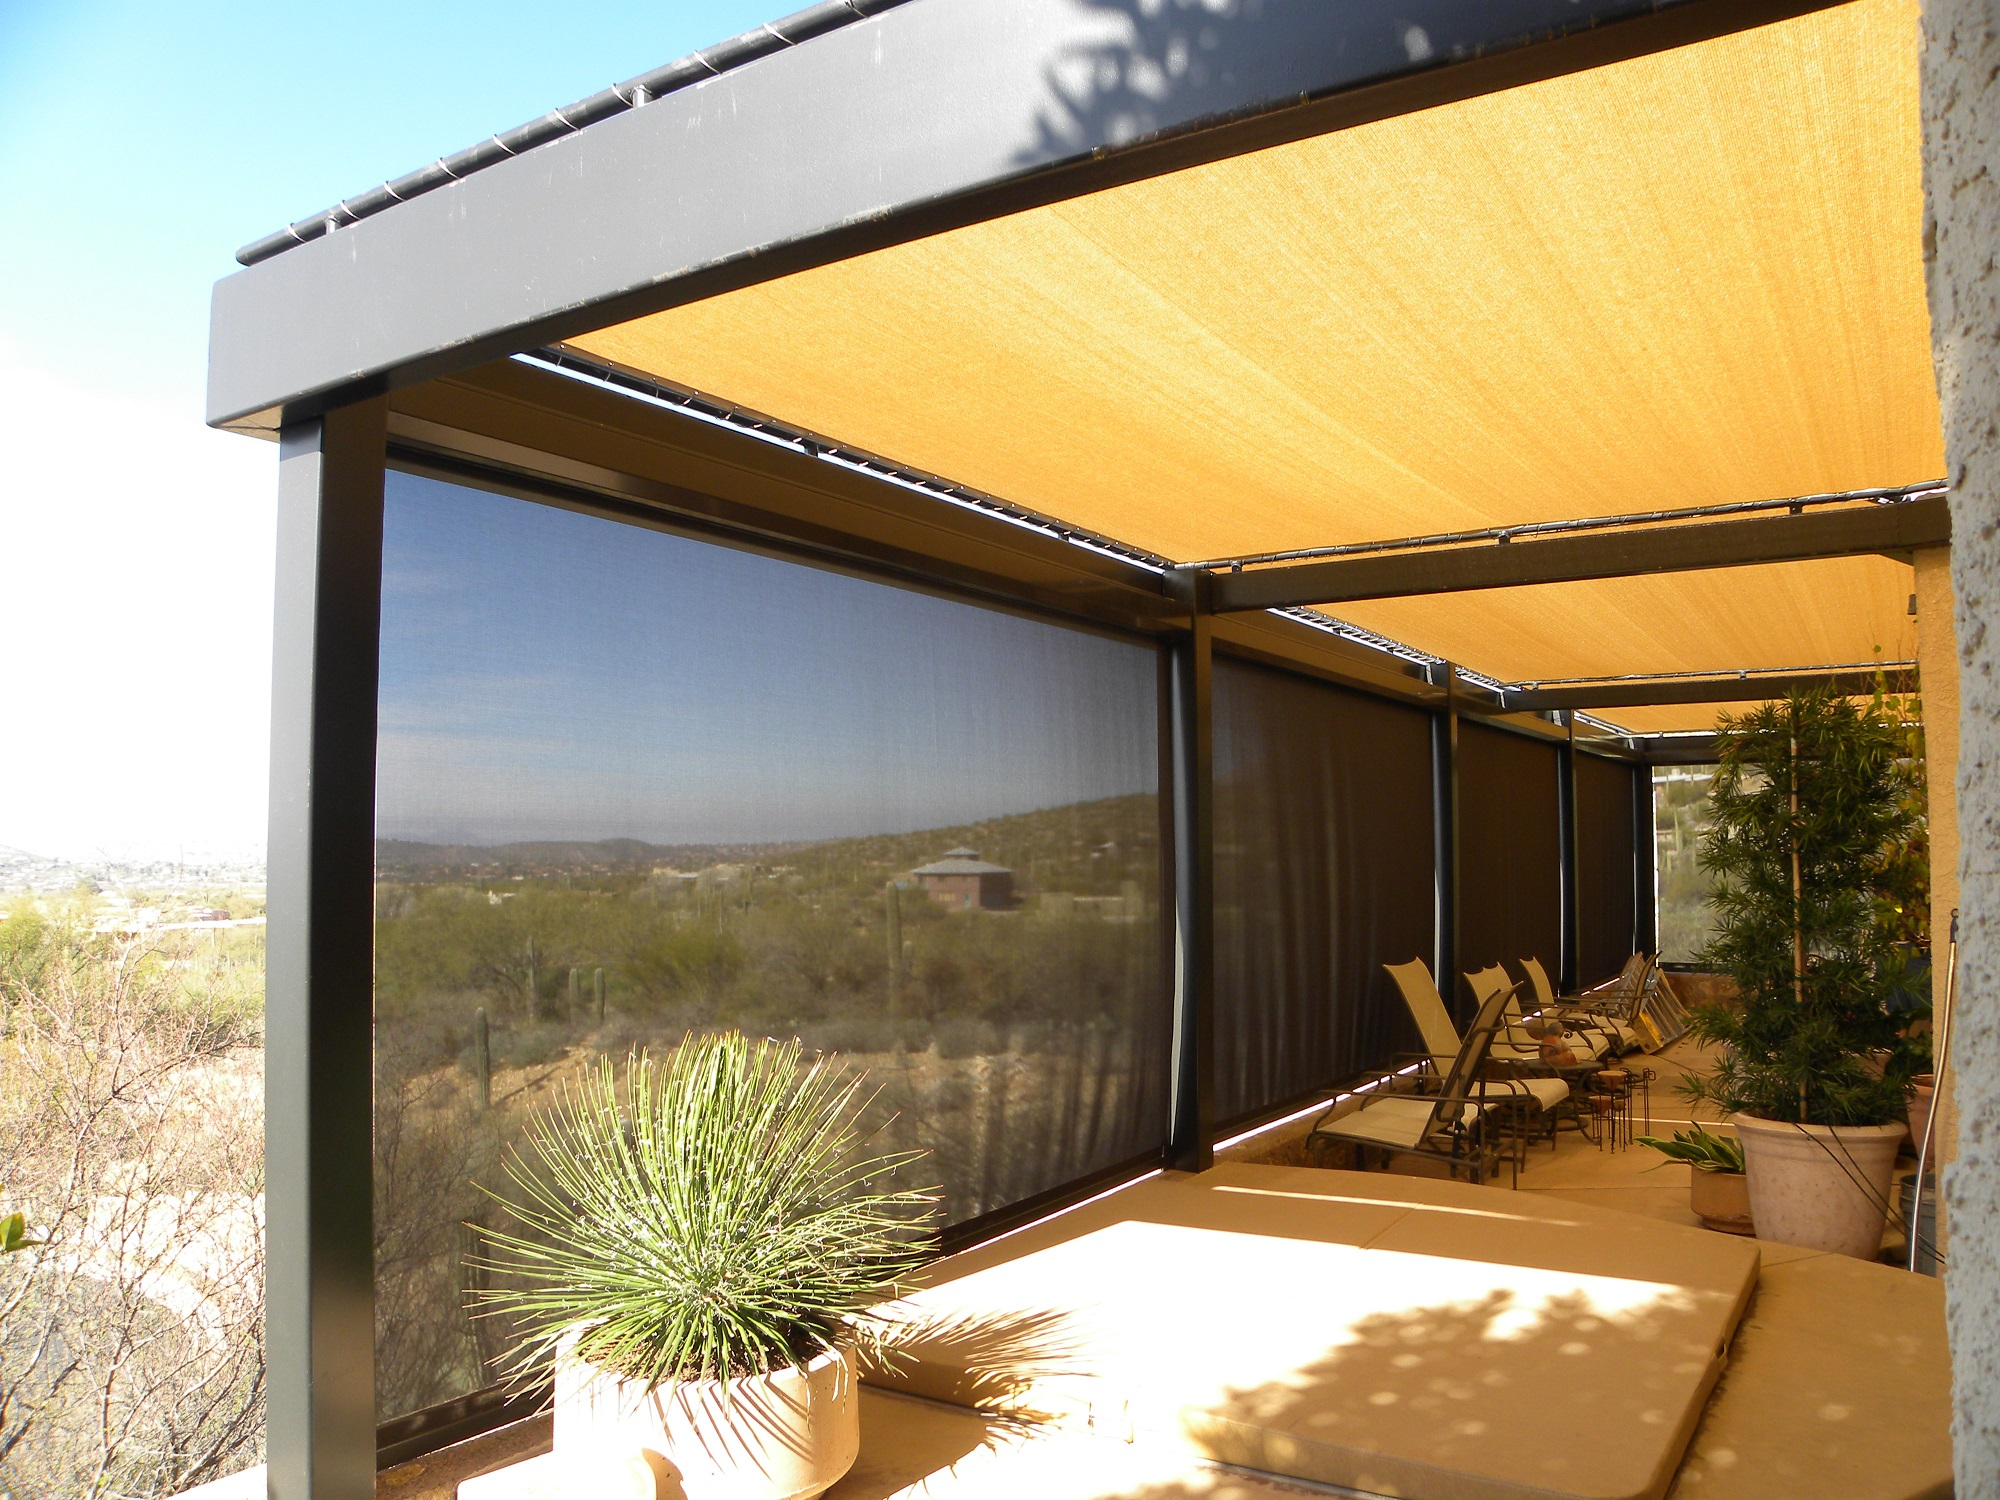 Tucson Residential Custom Shades and Awnings - Air and Sun ...